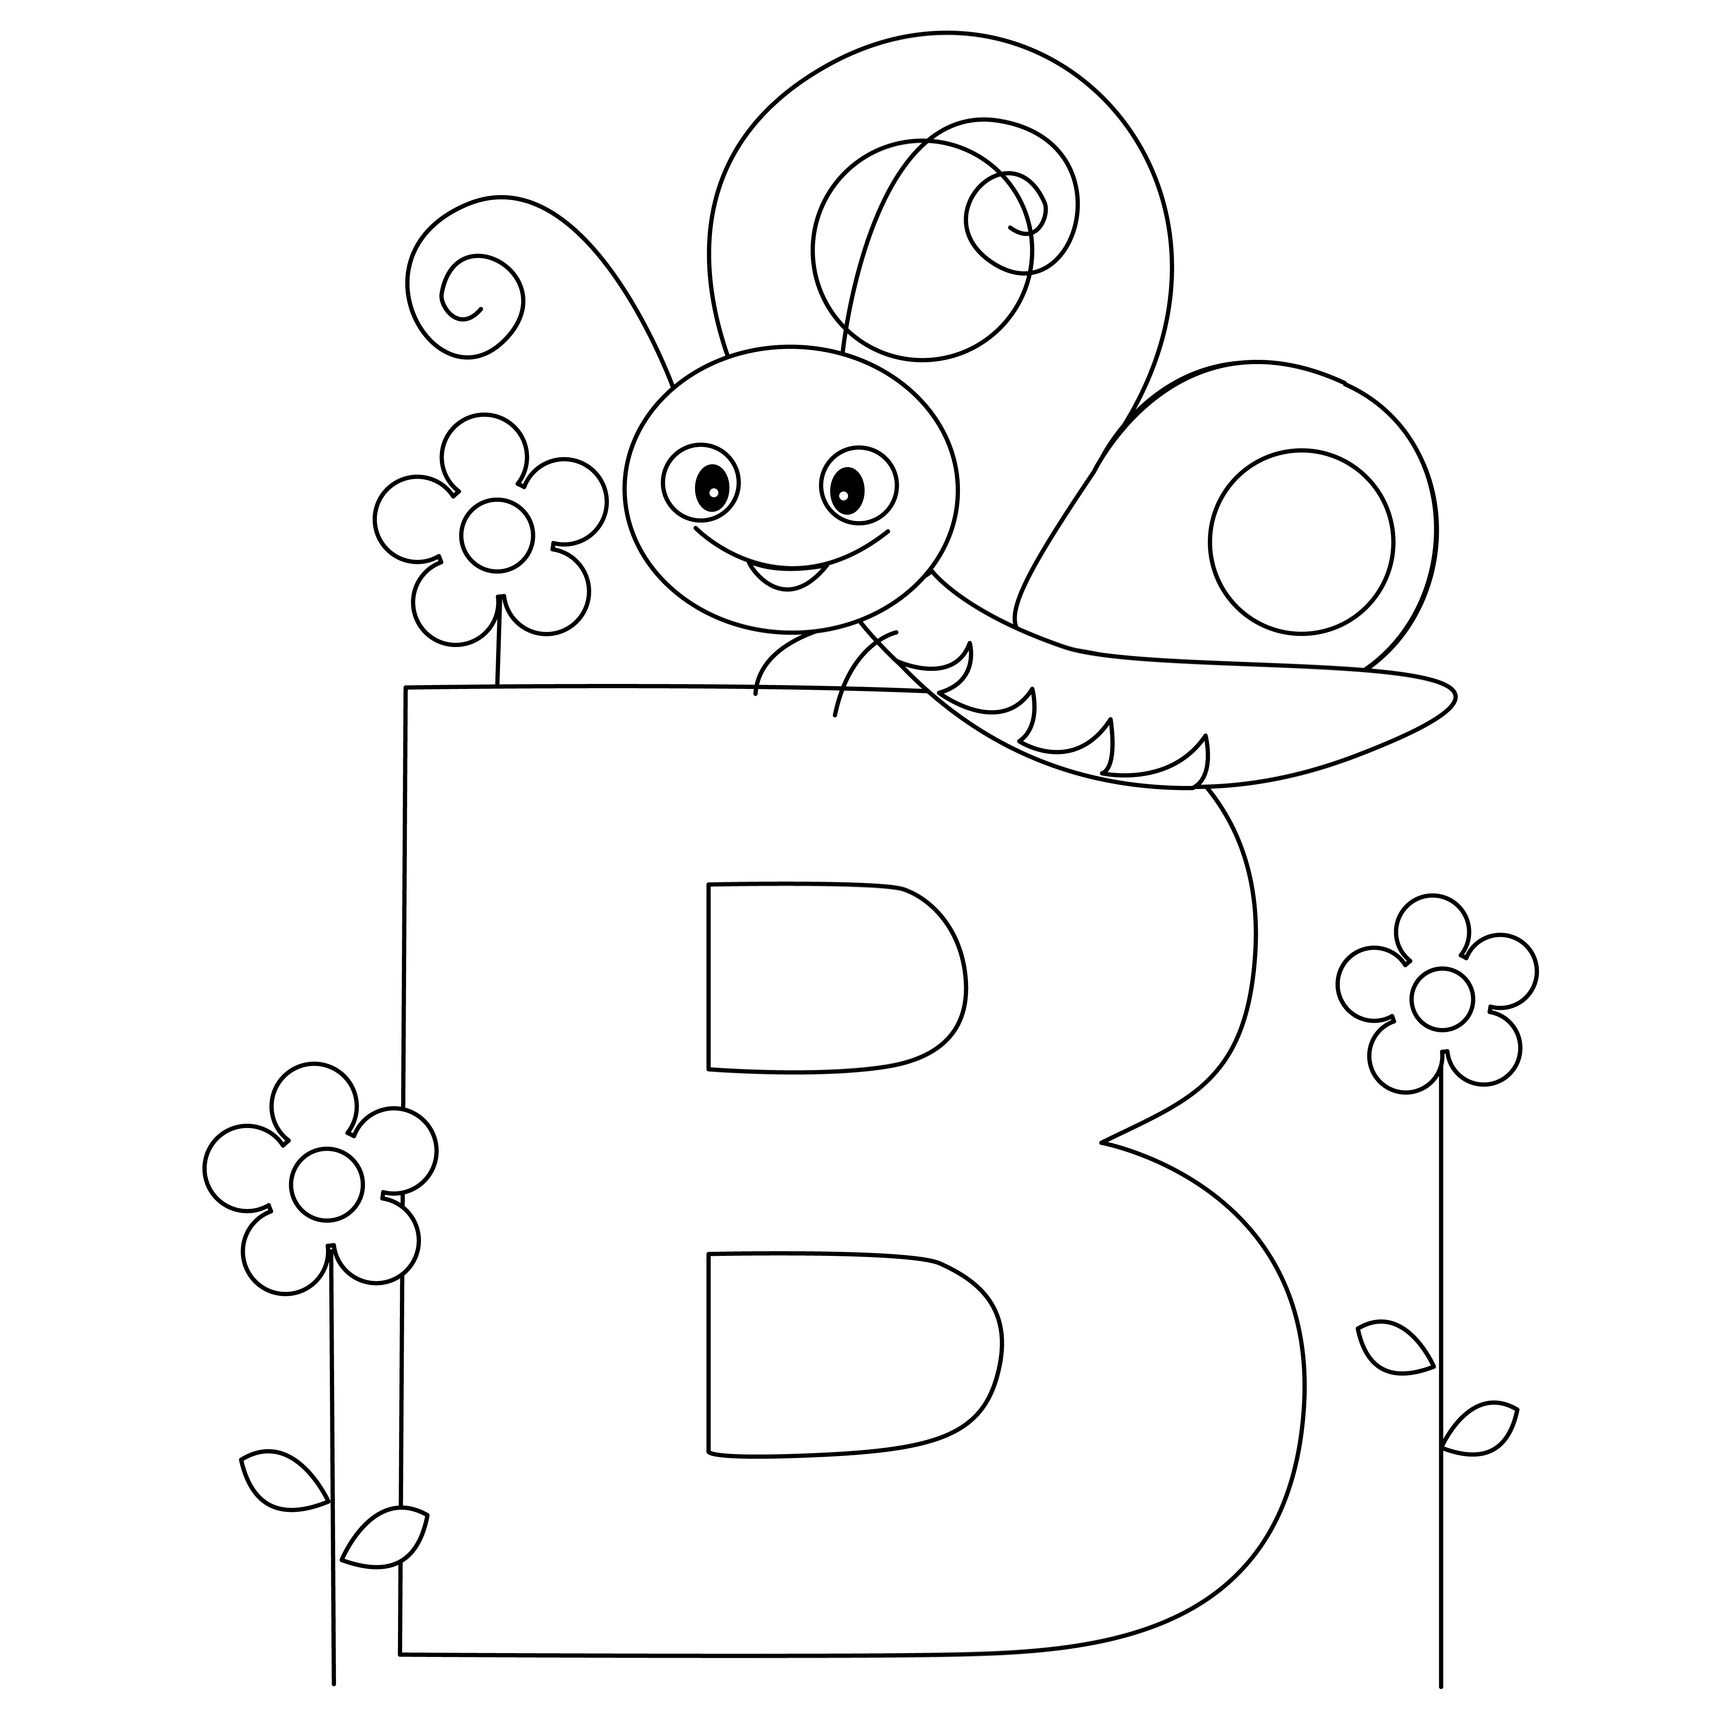 Abc Drawing at GetDrawings.com | Free for personal use Abc Drawing ...